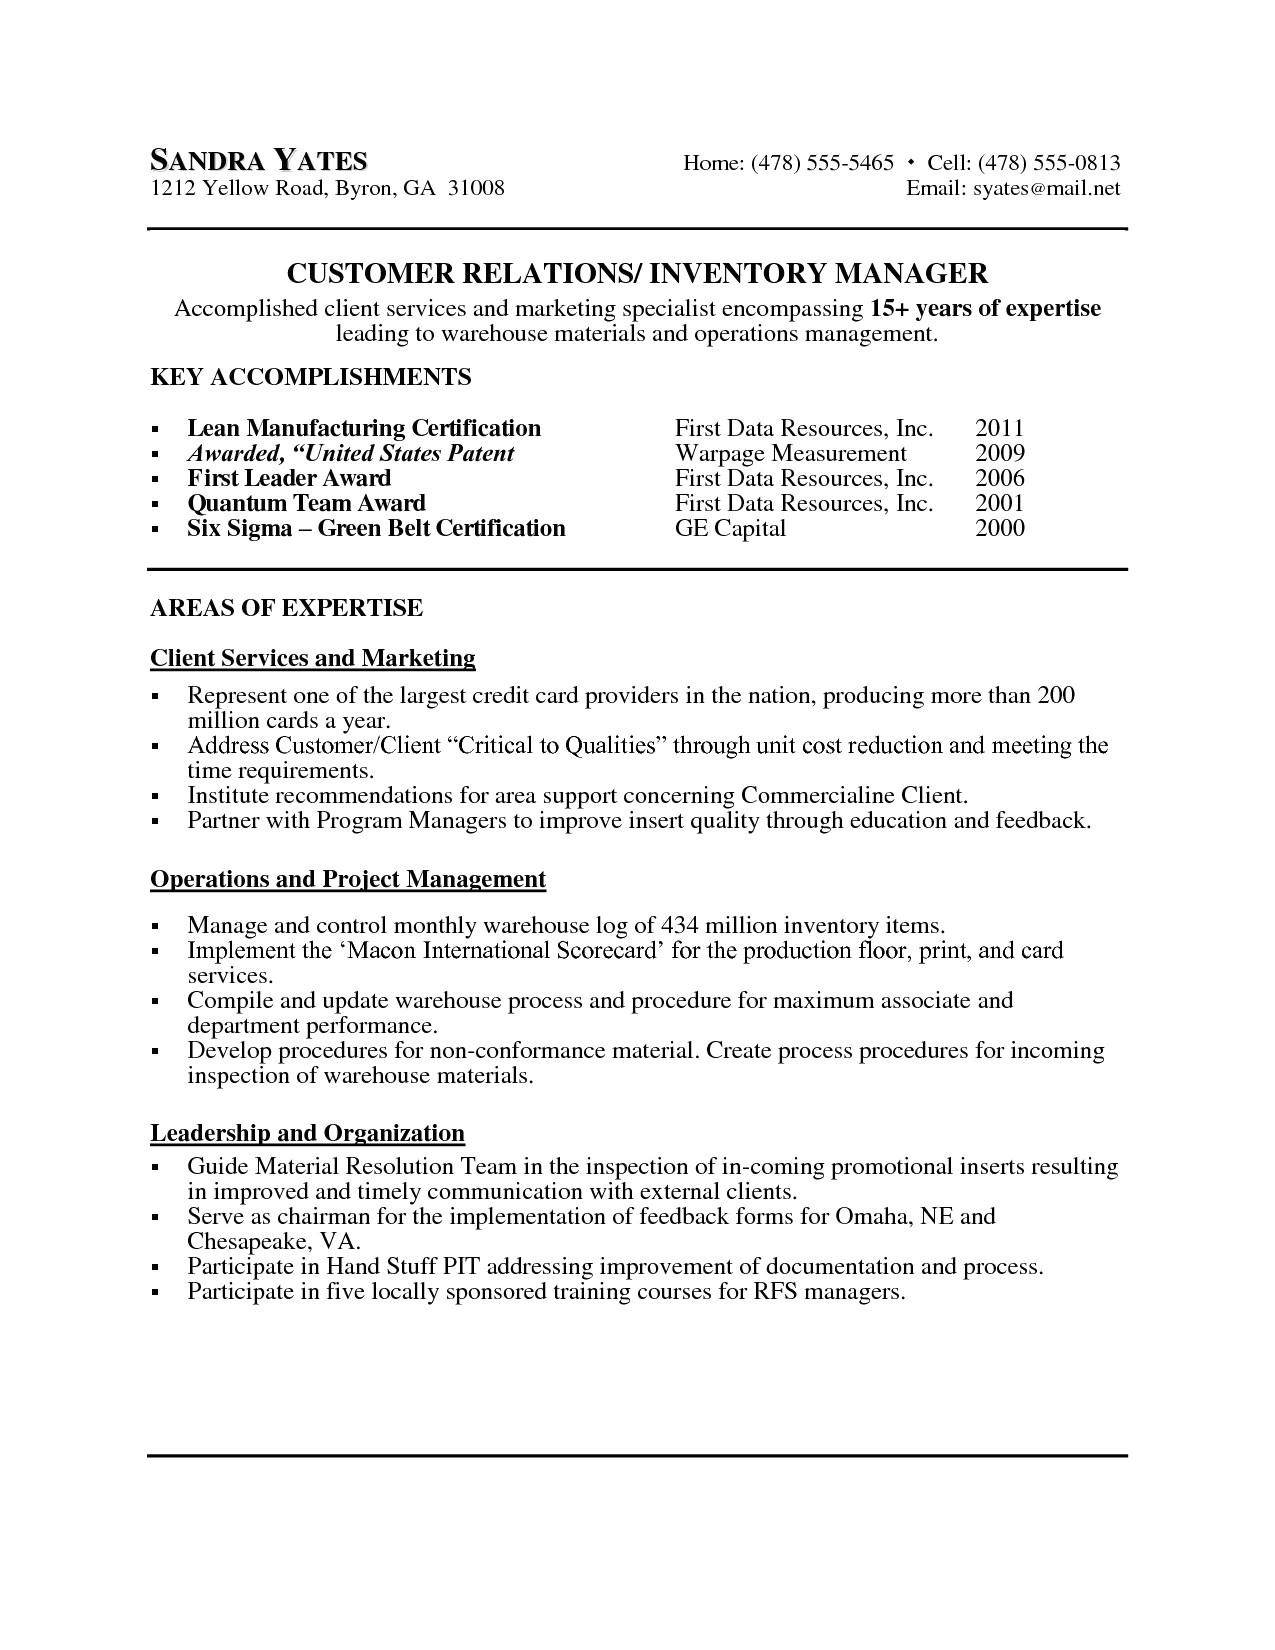 Resume About Me - 60 Design Resume About Me